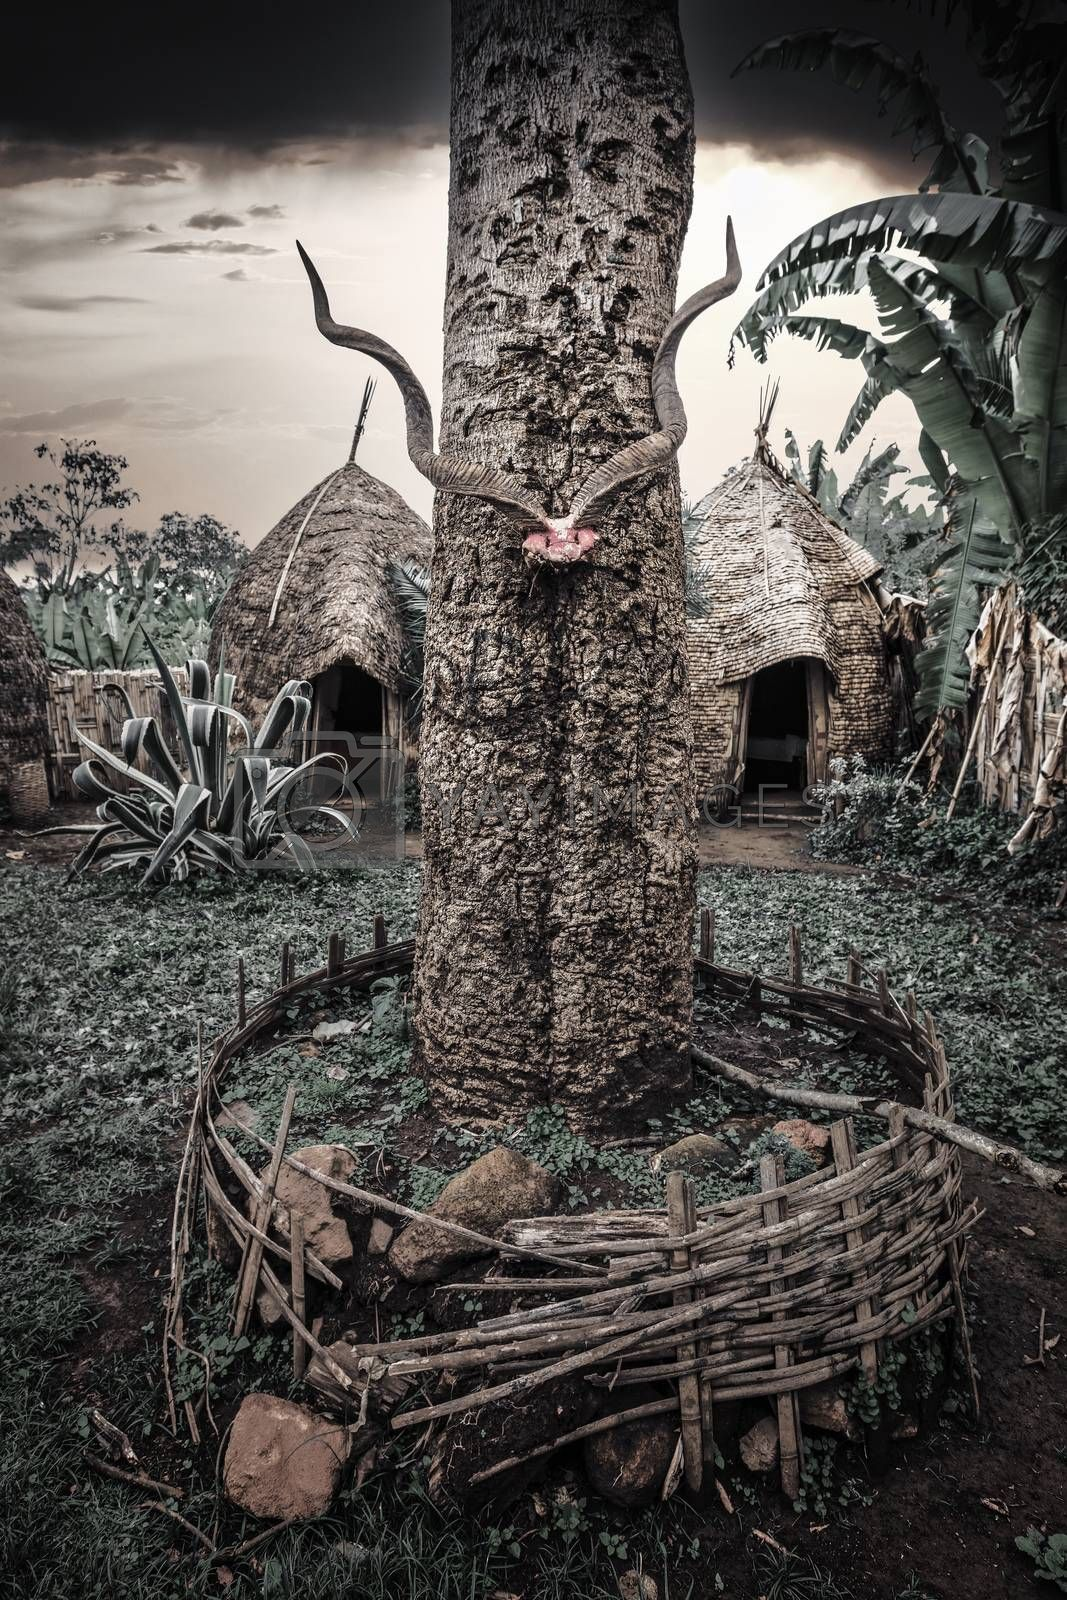 Totem in traditional elephant-shaped huts made of wood and straws in Dorze Village, Ethiopia.